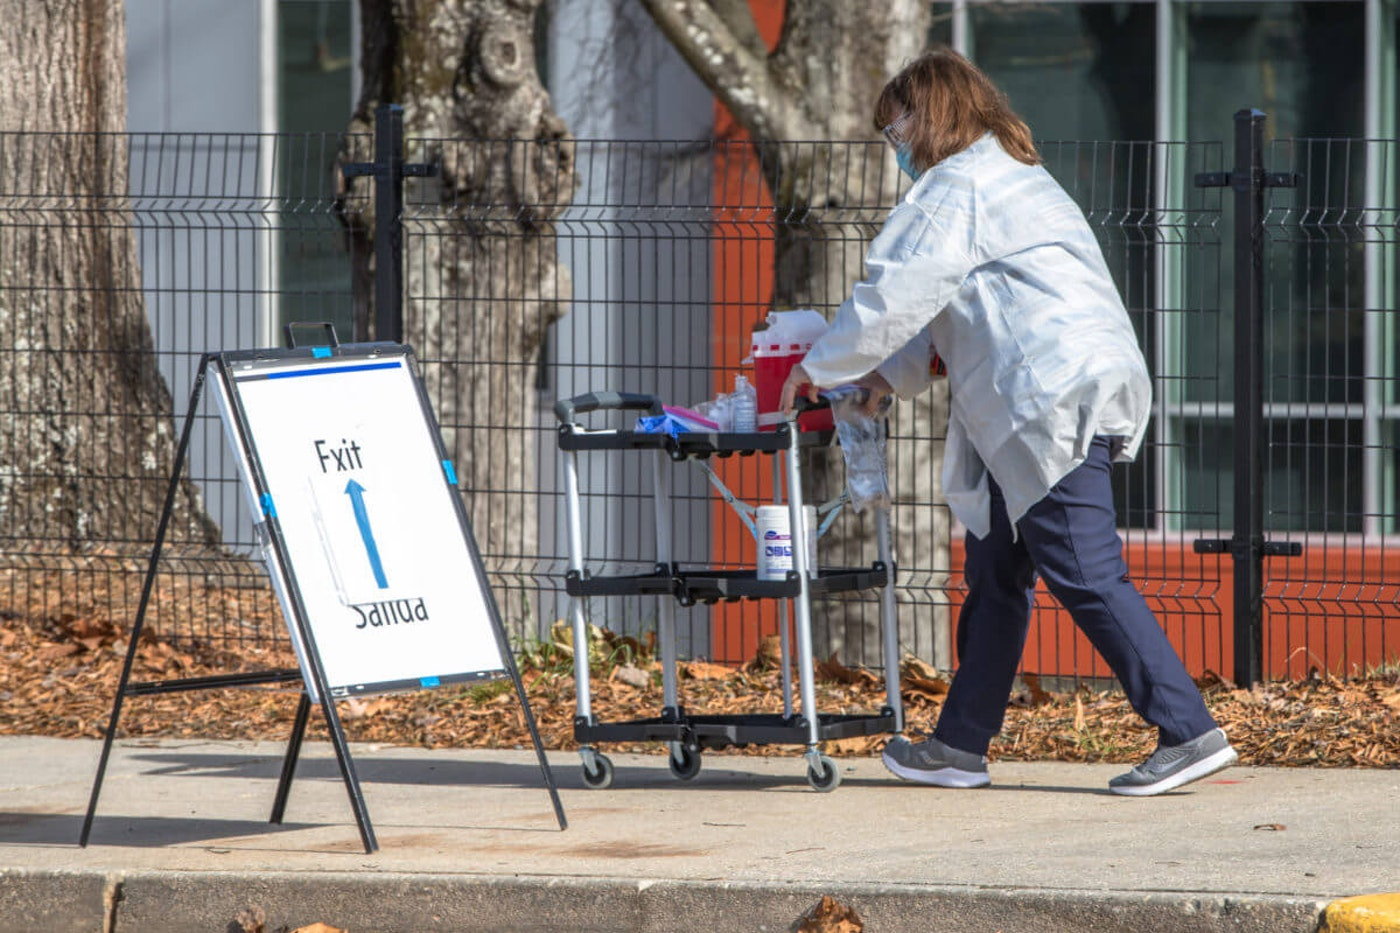 A medical professional heads to the parking lot  at BoJangles Arena  in Charlotte to administer the Covid-19 vaccine to a patient in their vehicle. Photo by Grant Baldwin for Courier Newsroom.